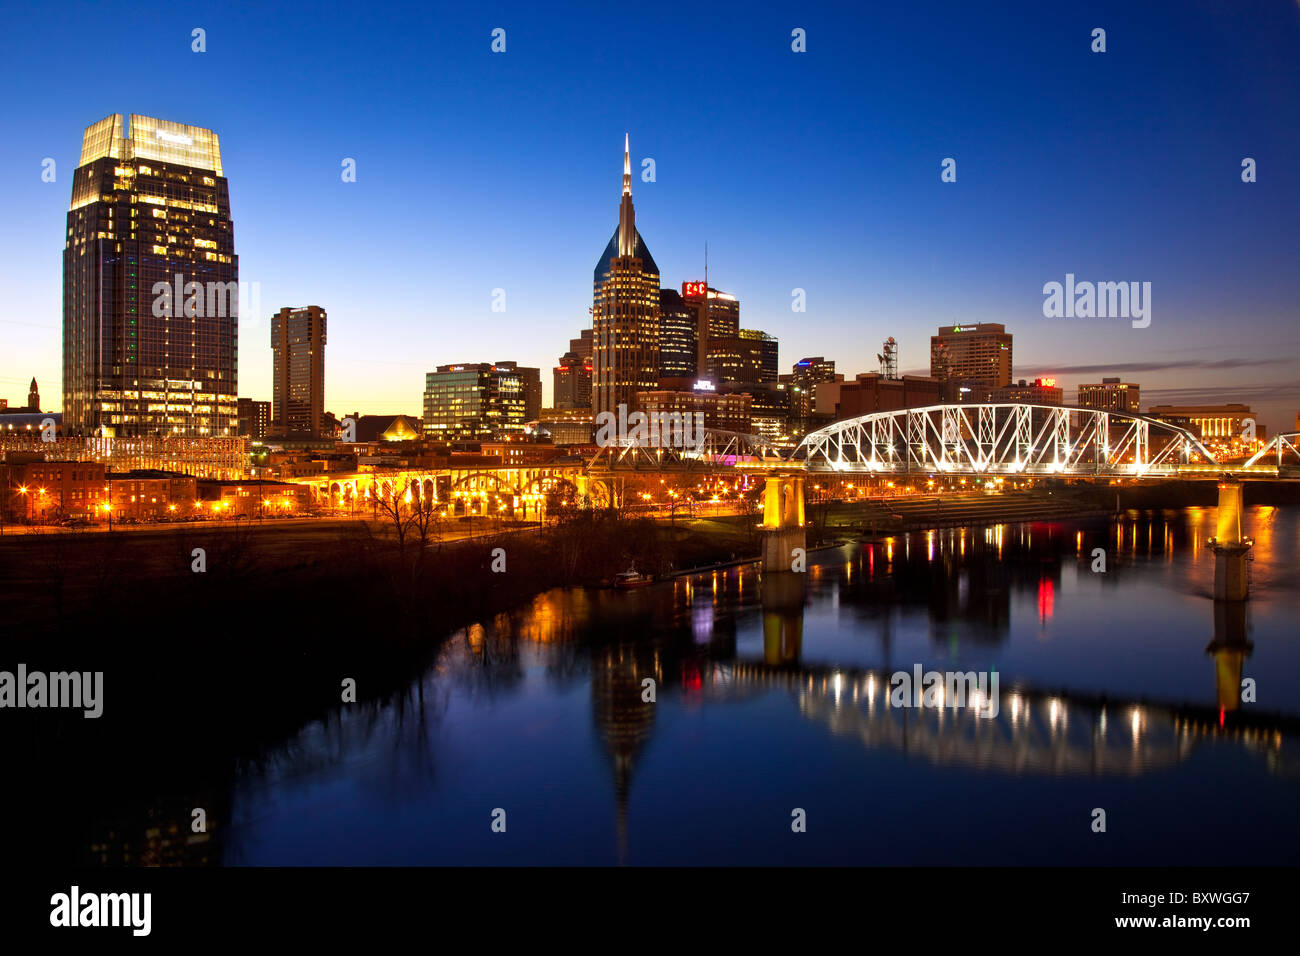 Twilight over the Cumberland River at Nashville Tennessee, USA - Stock Image